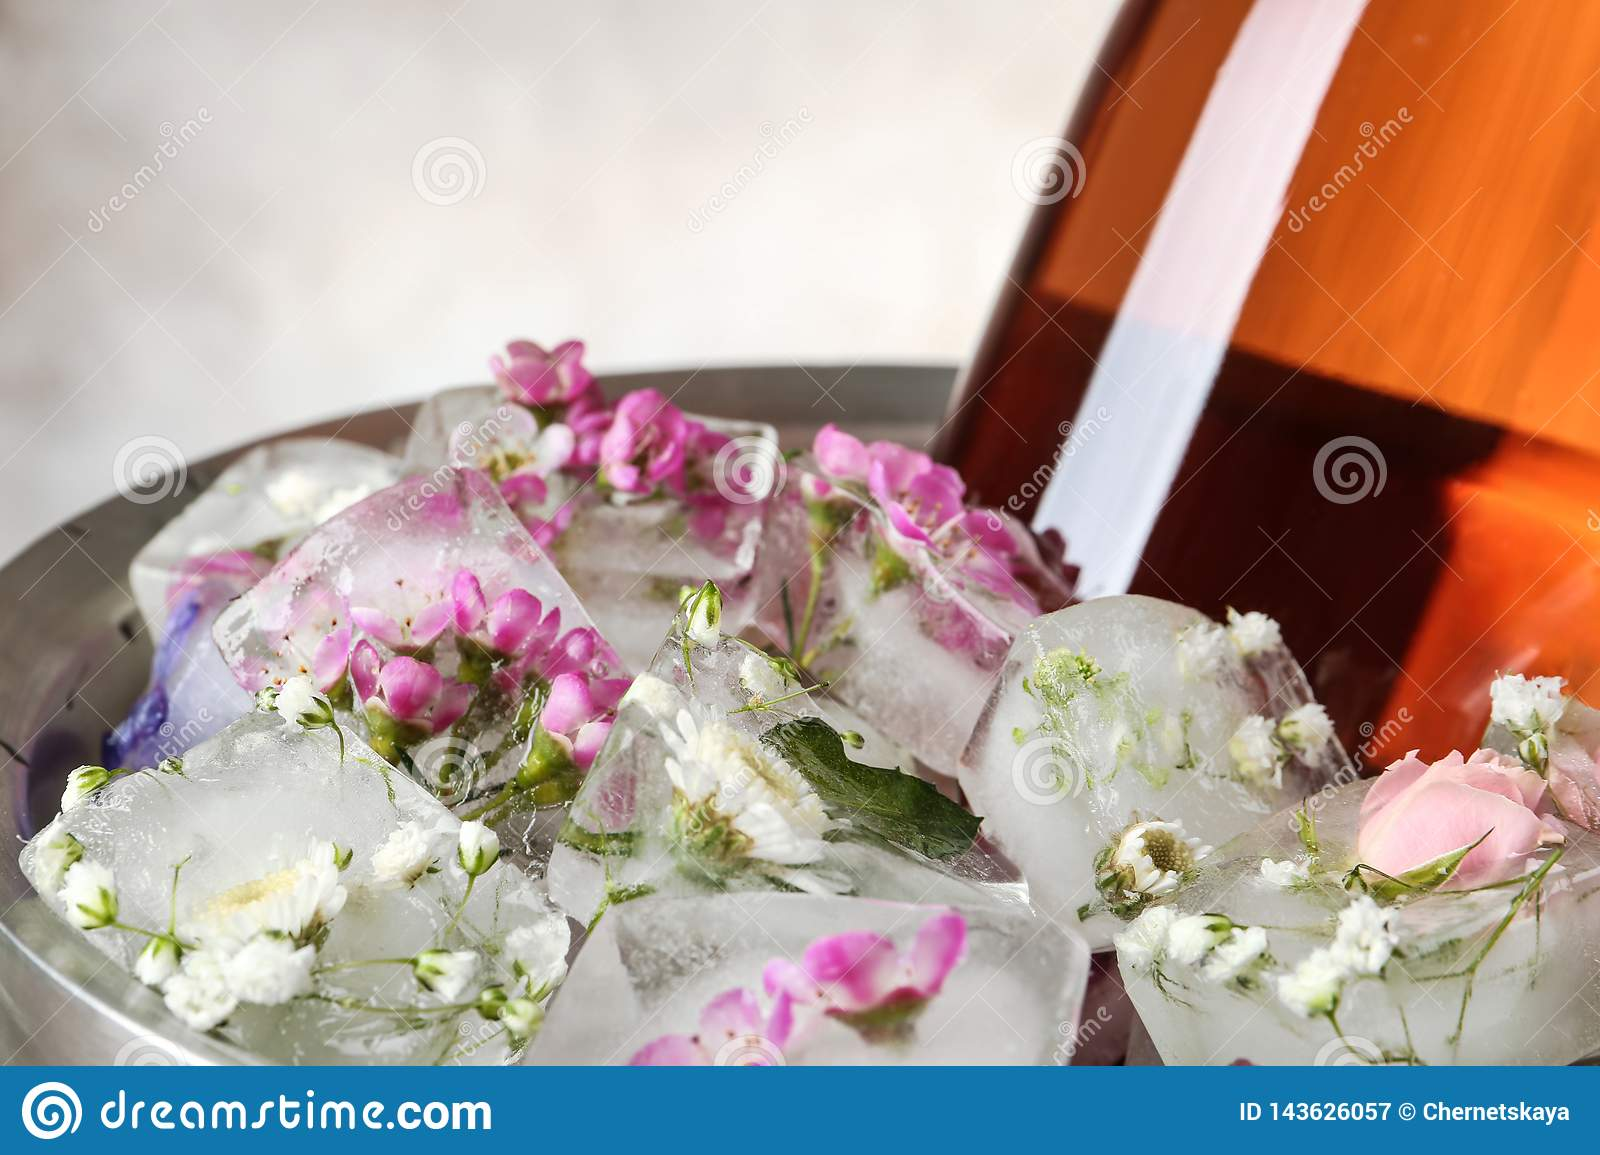 Floral Ice Cubes And Bottle Of Champagne In Bucket Stock Image Image Of Festive Light 143626057